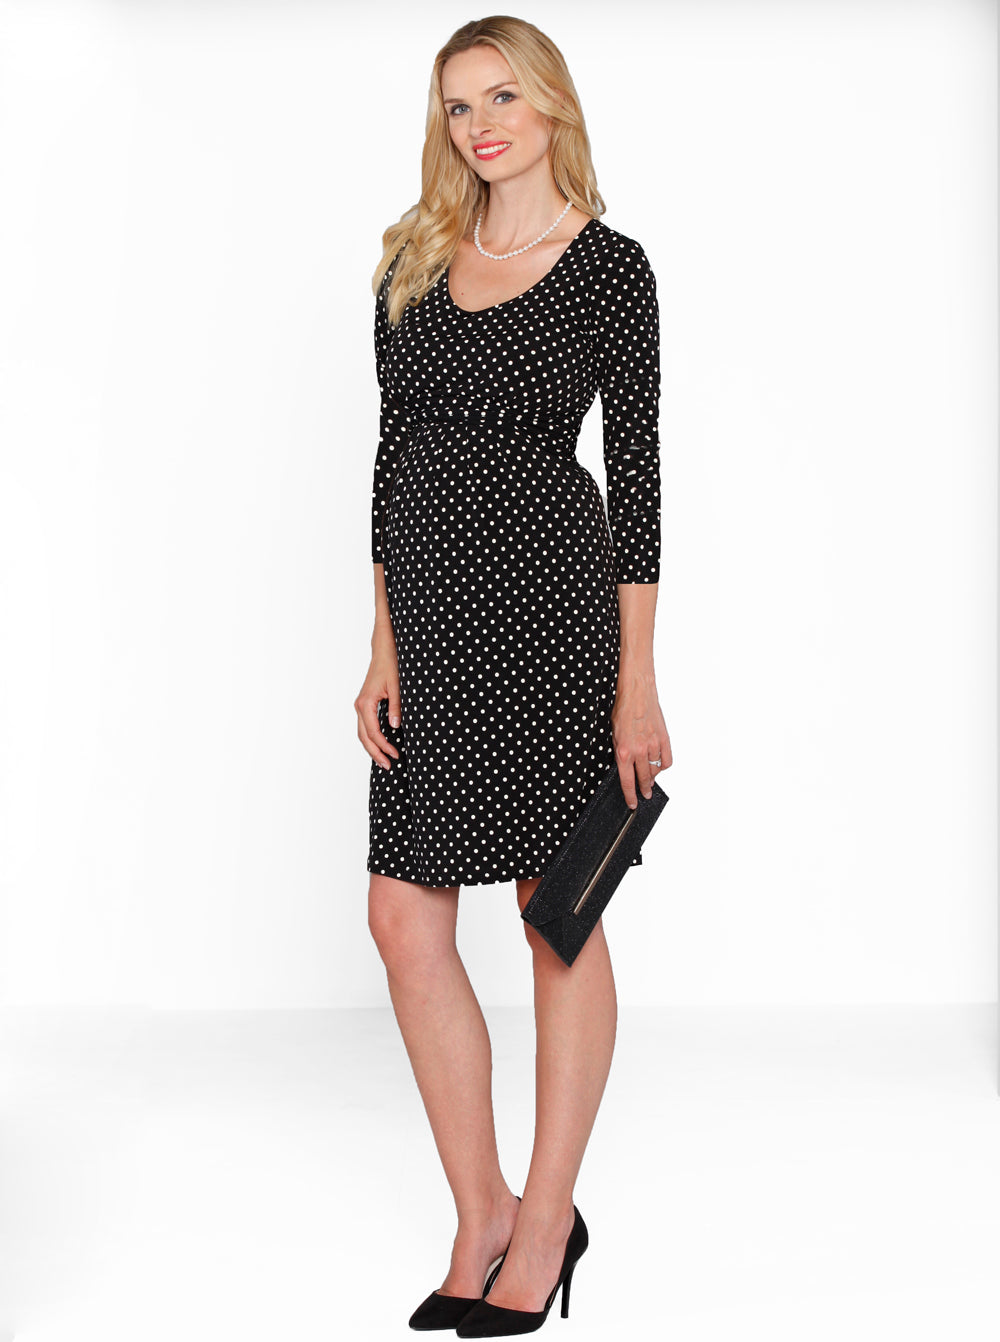 Maternity Busy Mommy Nursing Dress in Black Dots